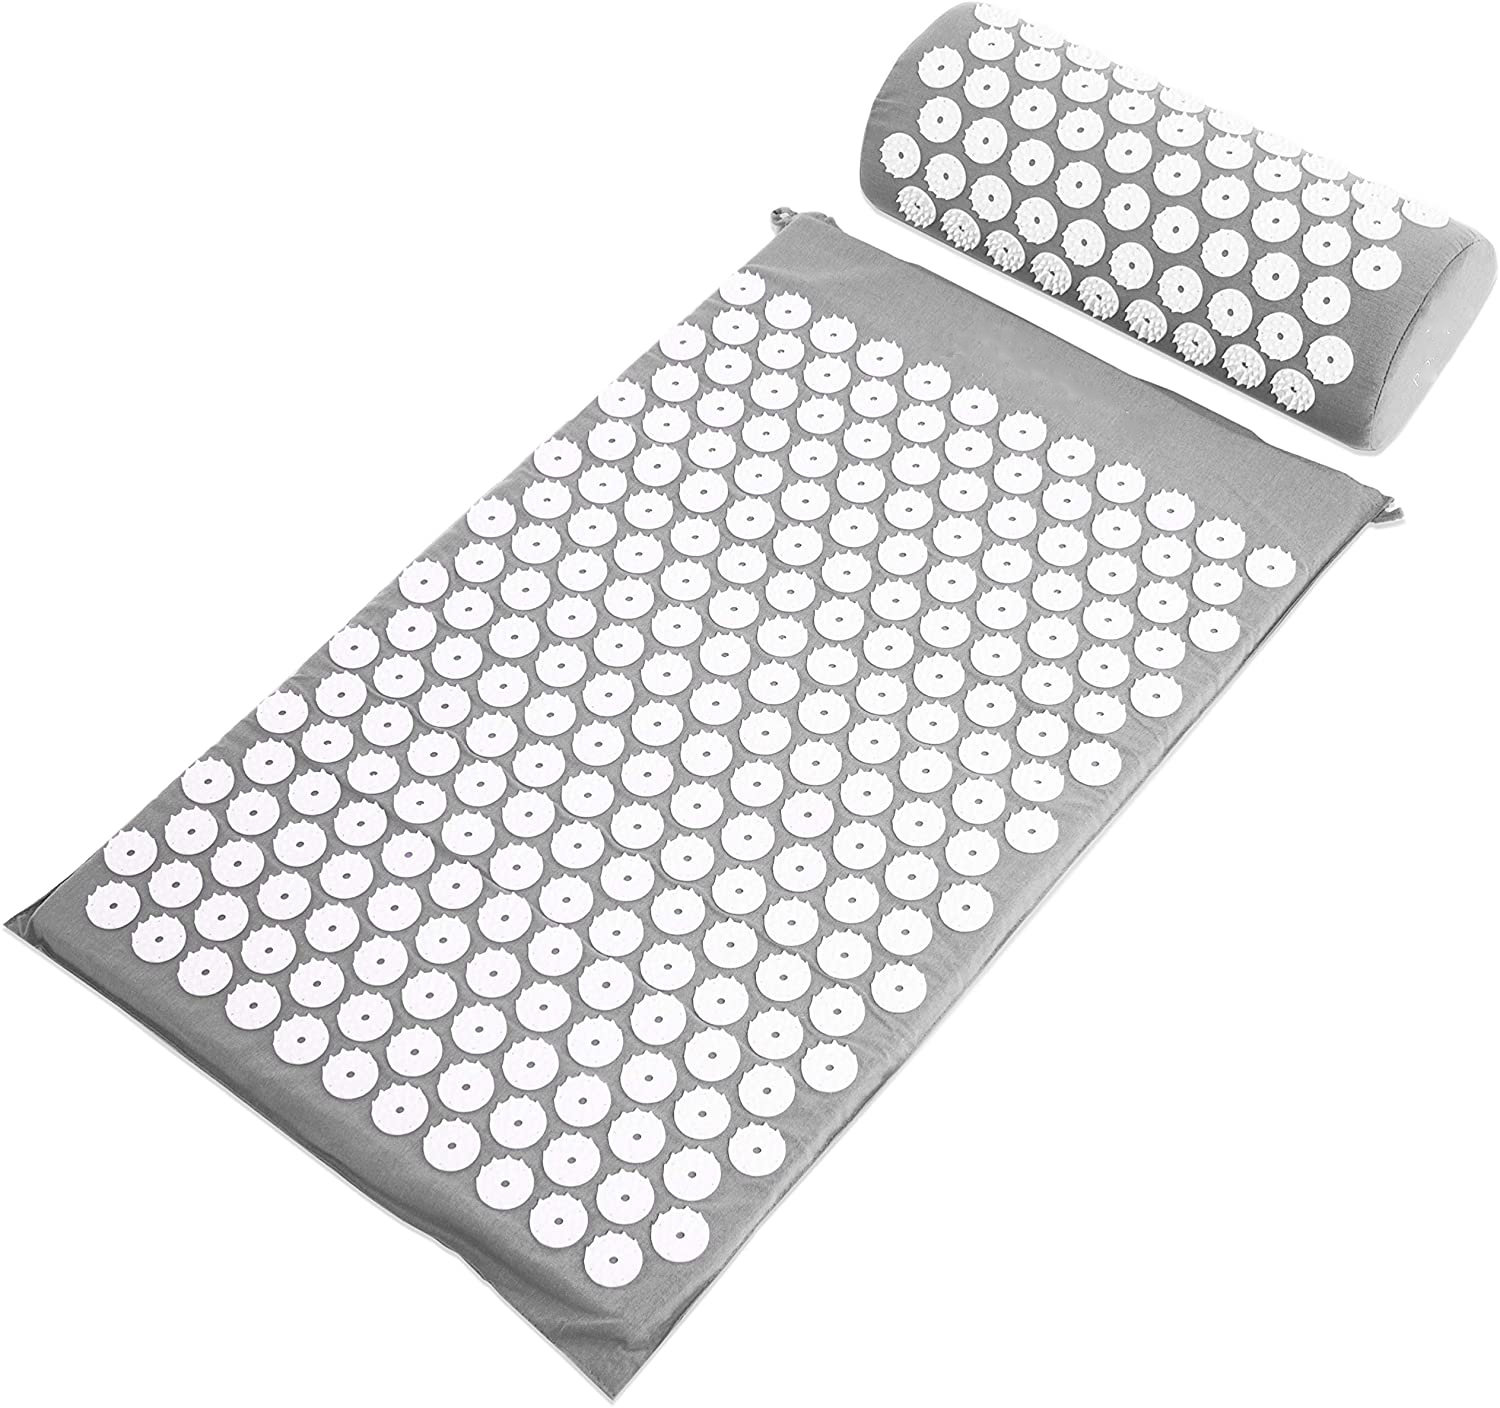 Acupressure Massager Cushion Body Pain Relieve Spike Yoga Mat with Pillow